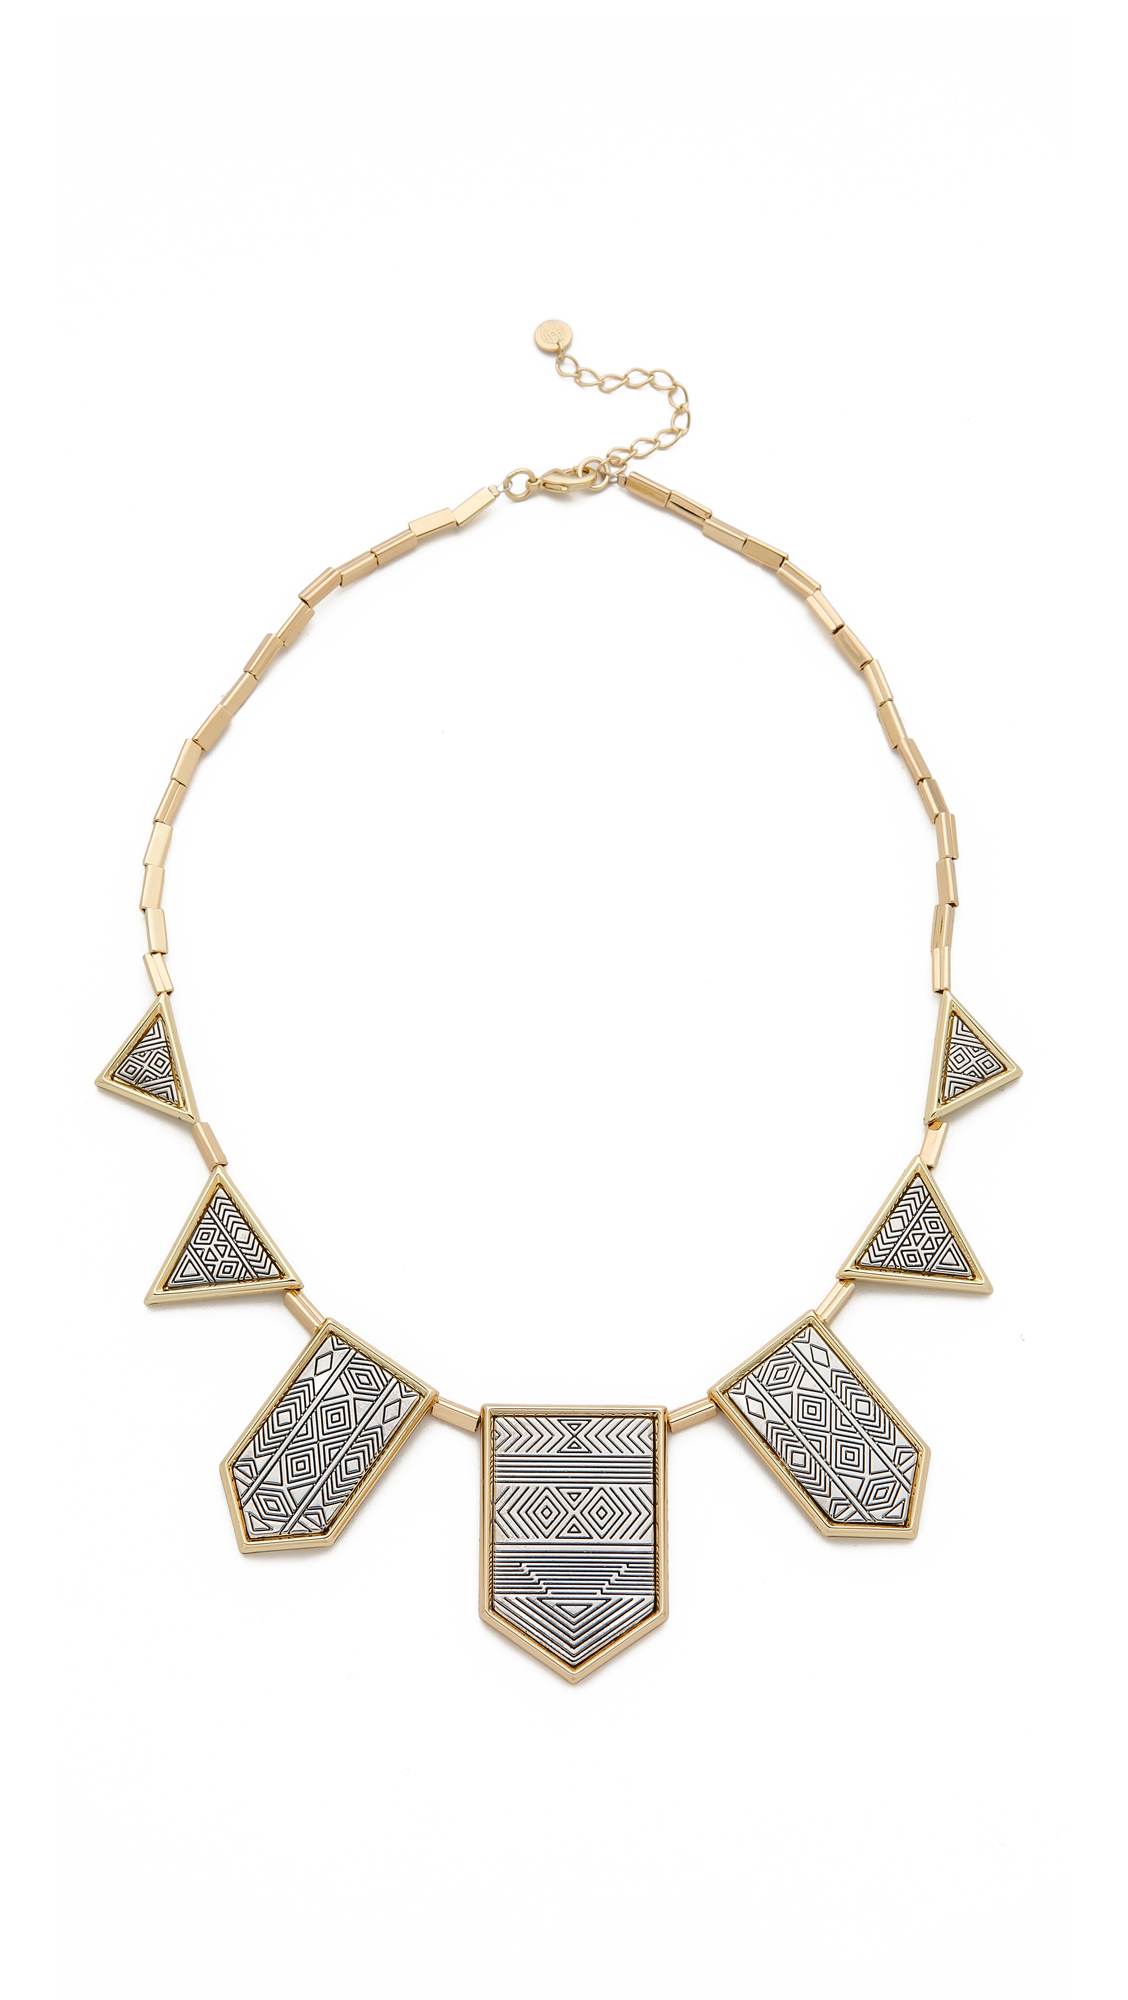 House Of Harlow Classic Station Pyramid Necklace in Metallic Silver ZoYgx